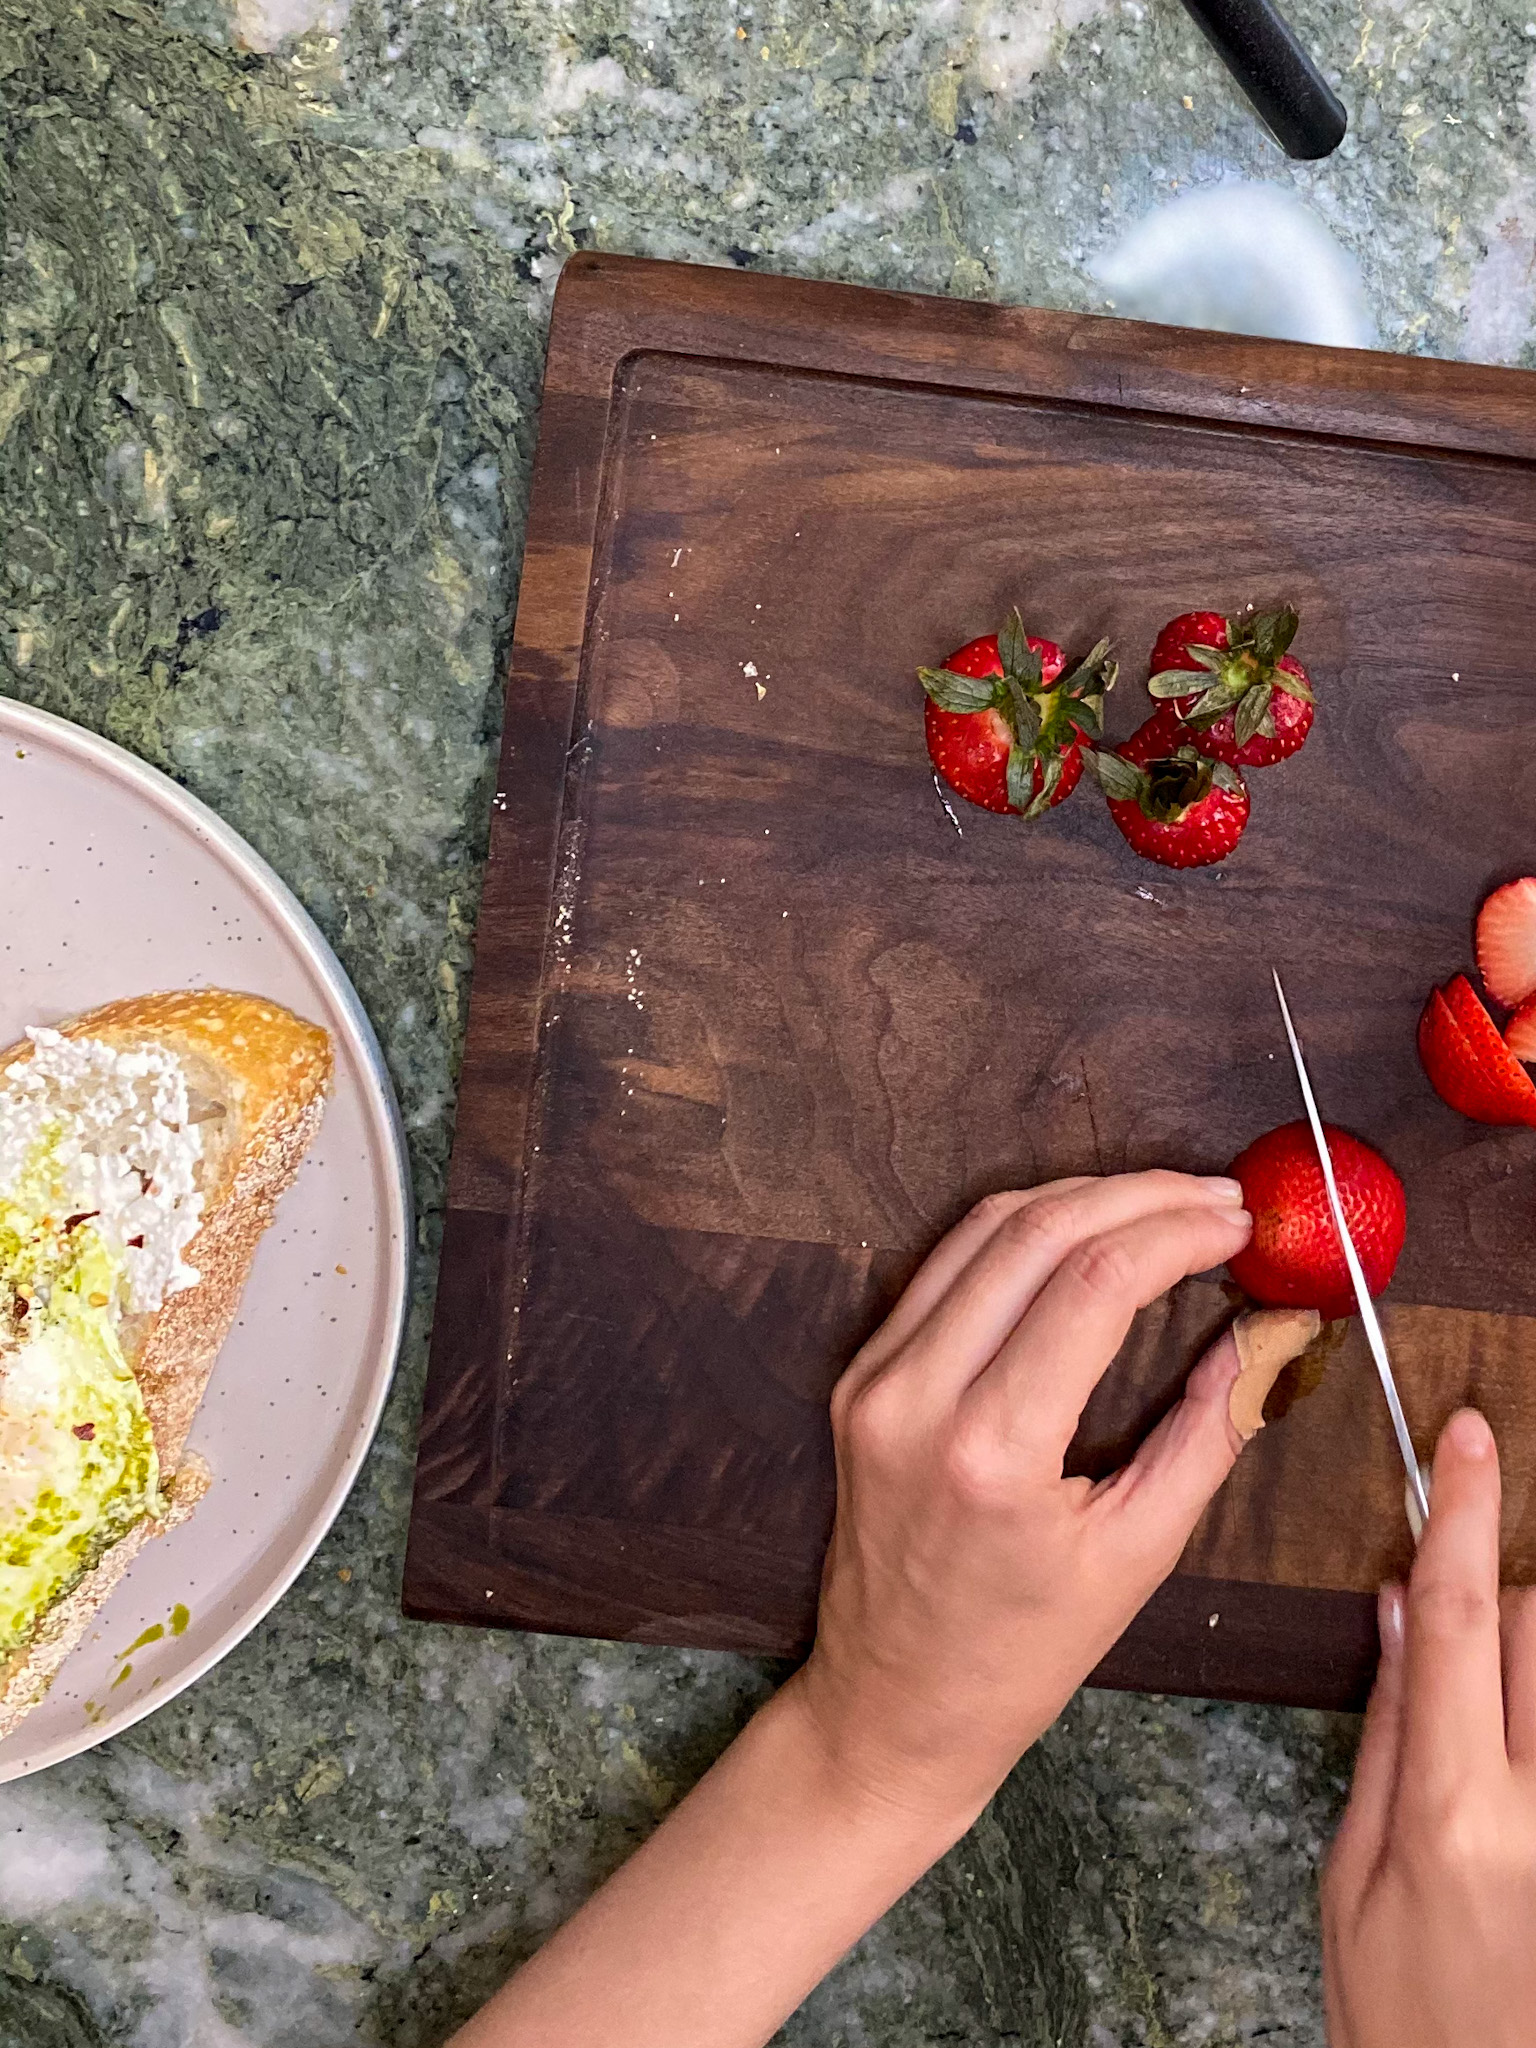 woman slicing strawberries on a chop board